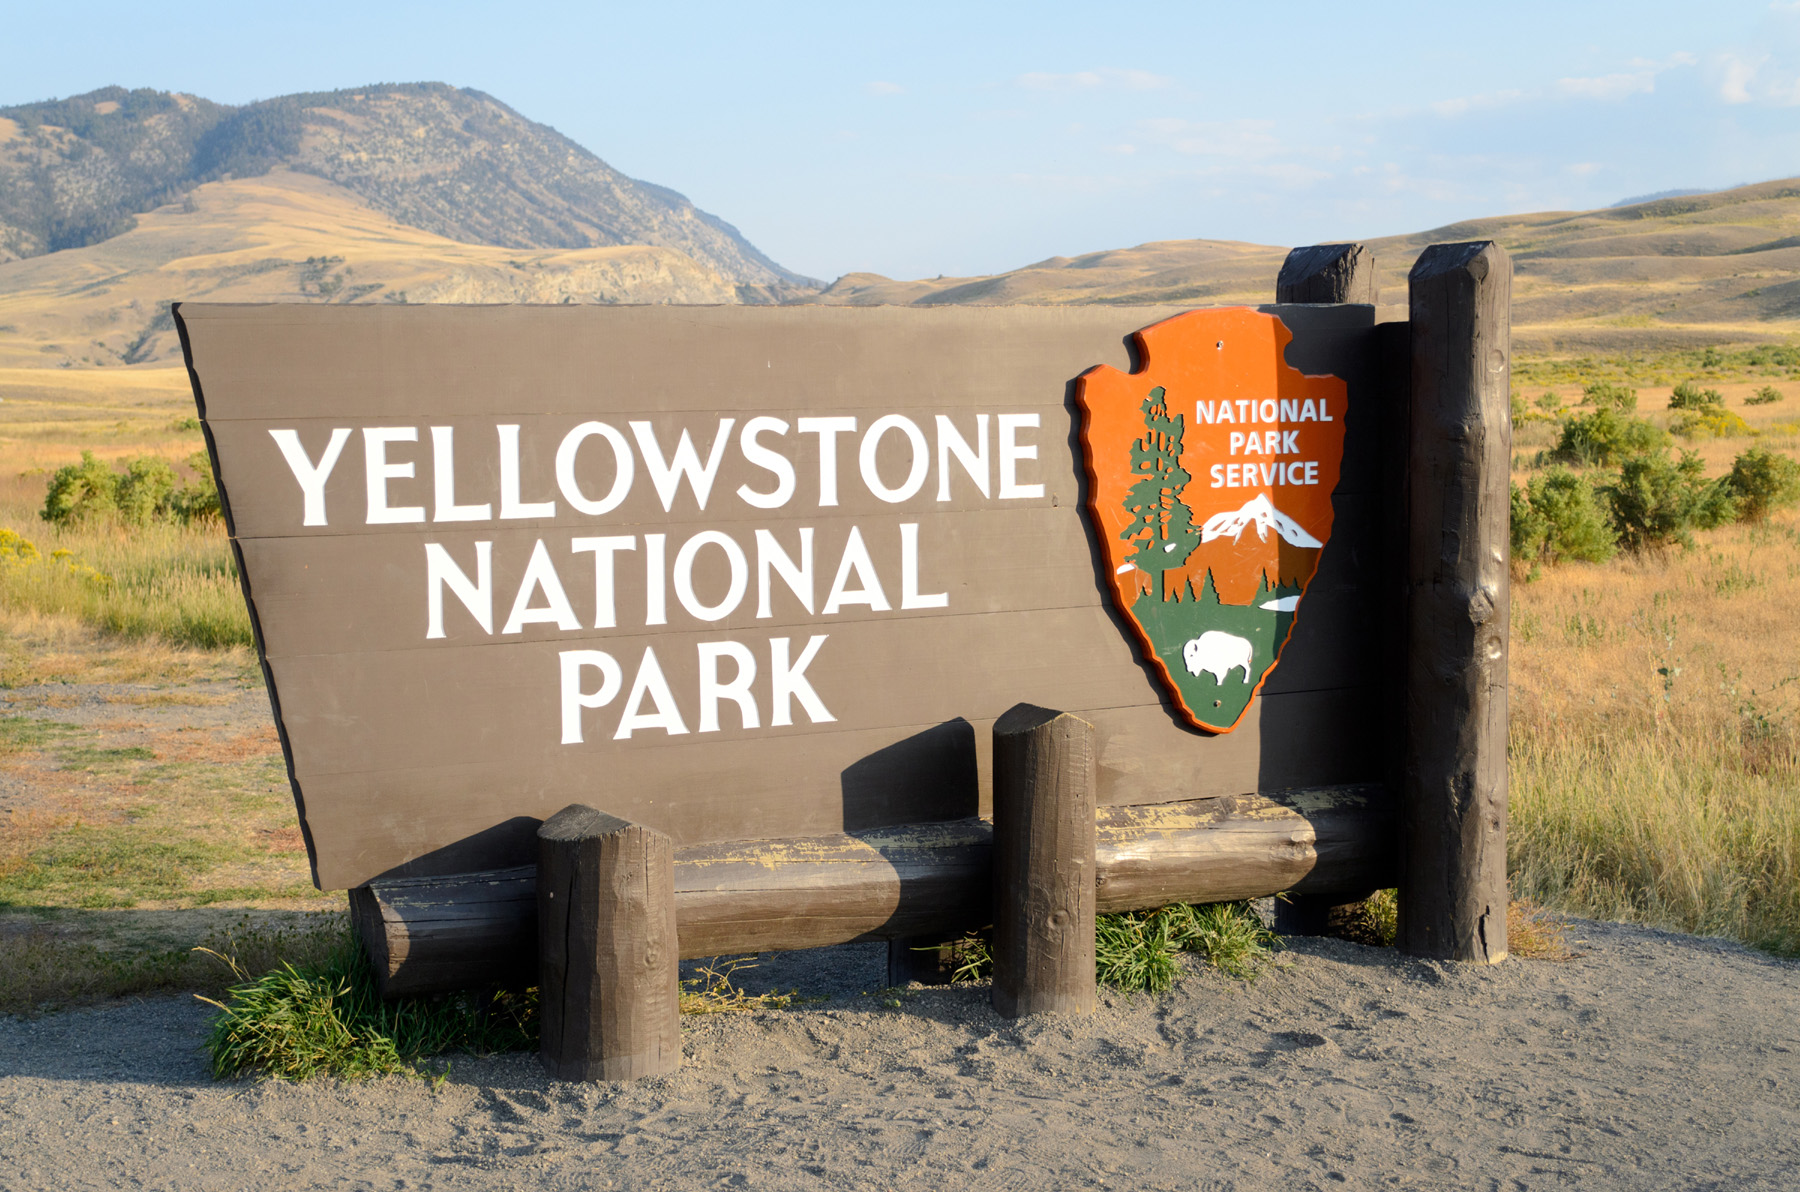 Yellowstone National Park signs 51228